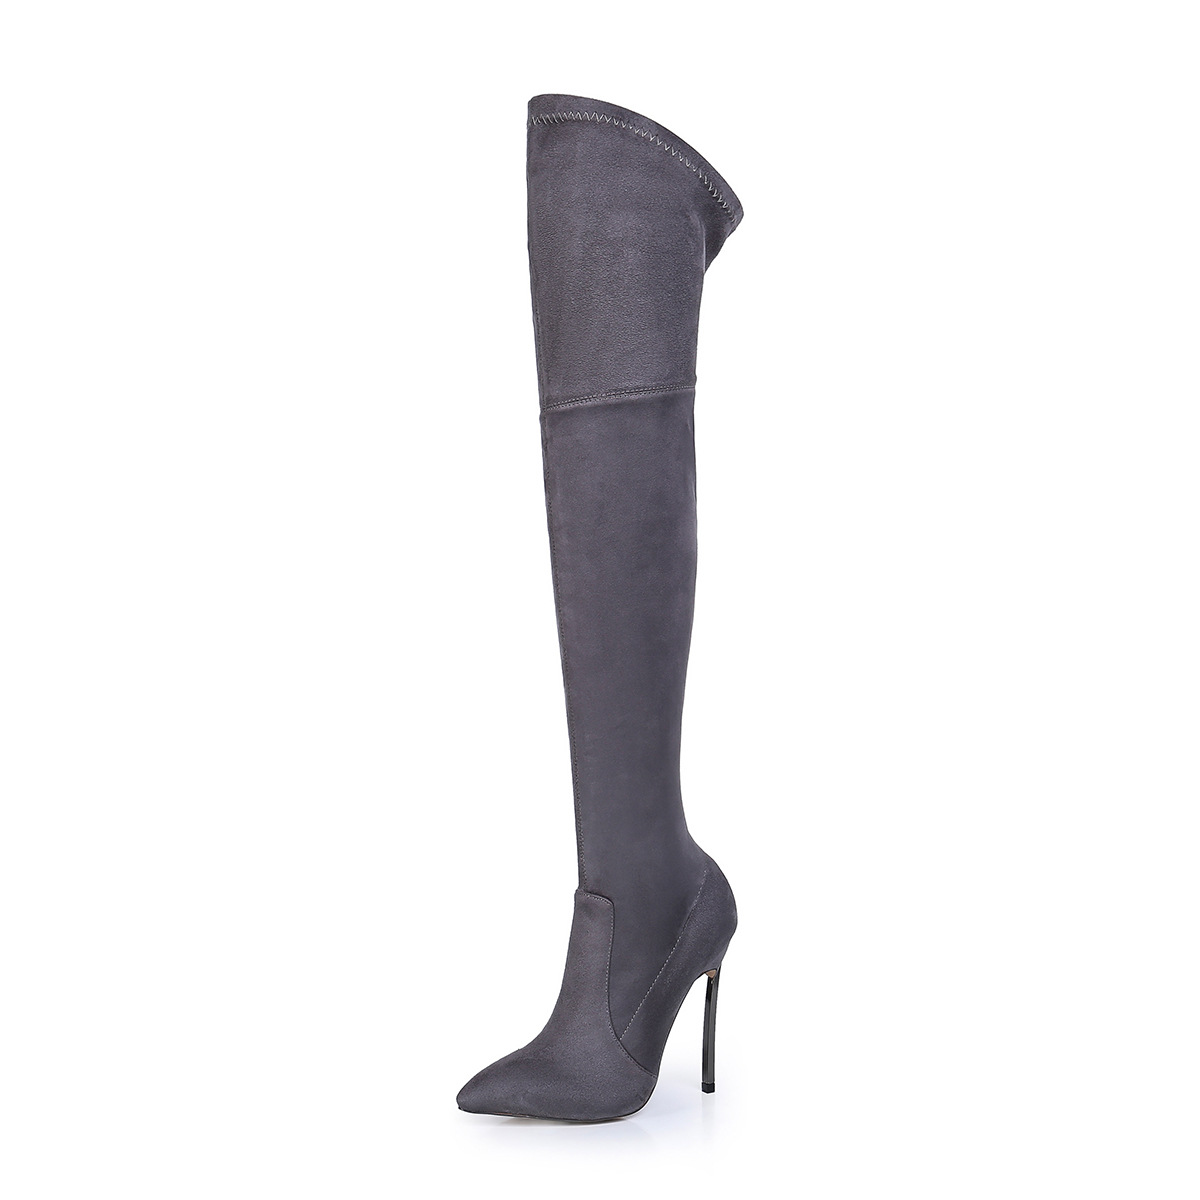 Ylqp Large Size 35-43 Over The Knee Boots Fashion Shoes Women Keep Warm Snow Boots High Heels Shoes Winter Boots Flock ppnu woman winter nubuck genuine leather over the knee snow boots women fashion womens suede thigh high boots ladies shoes flats